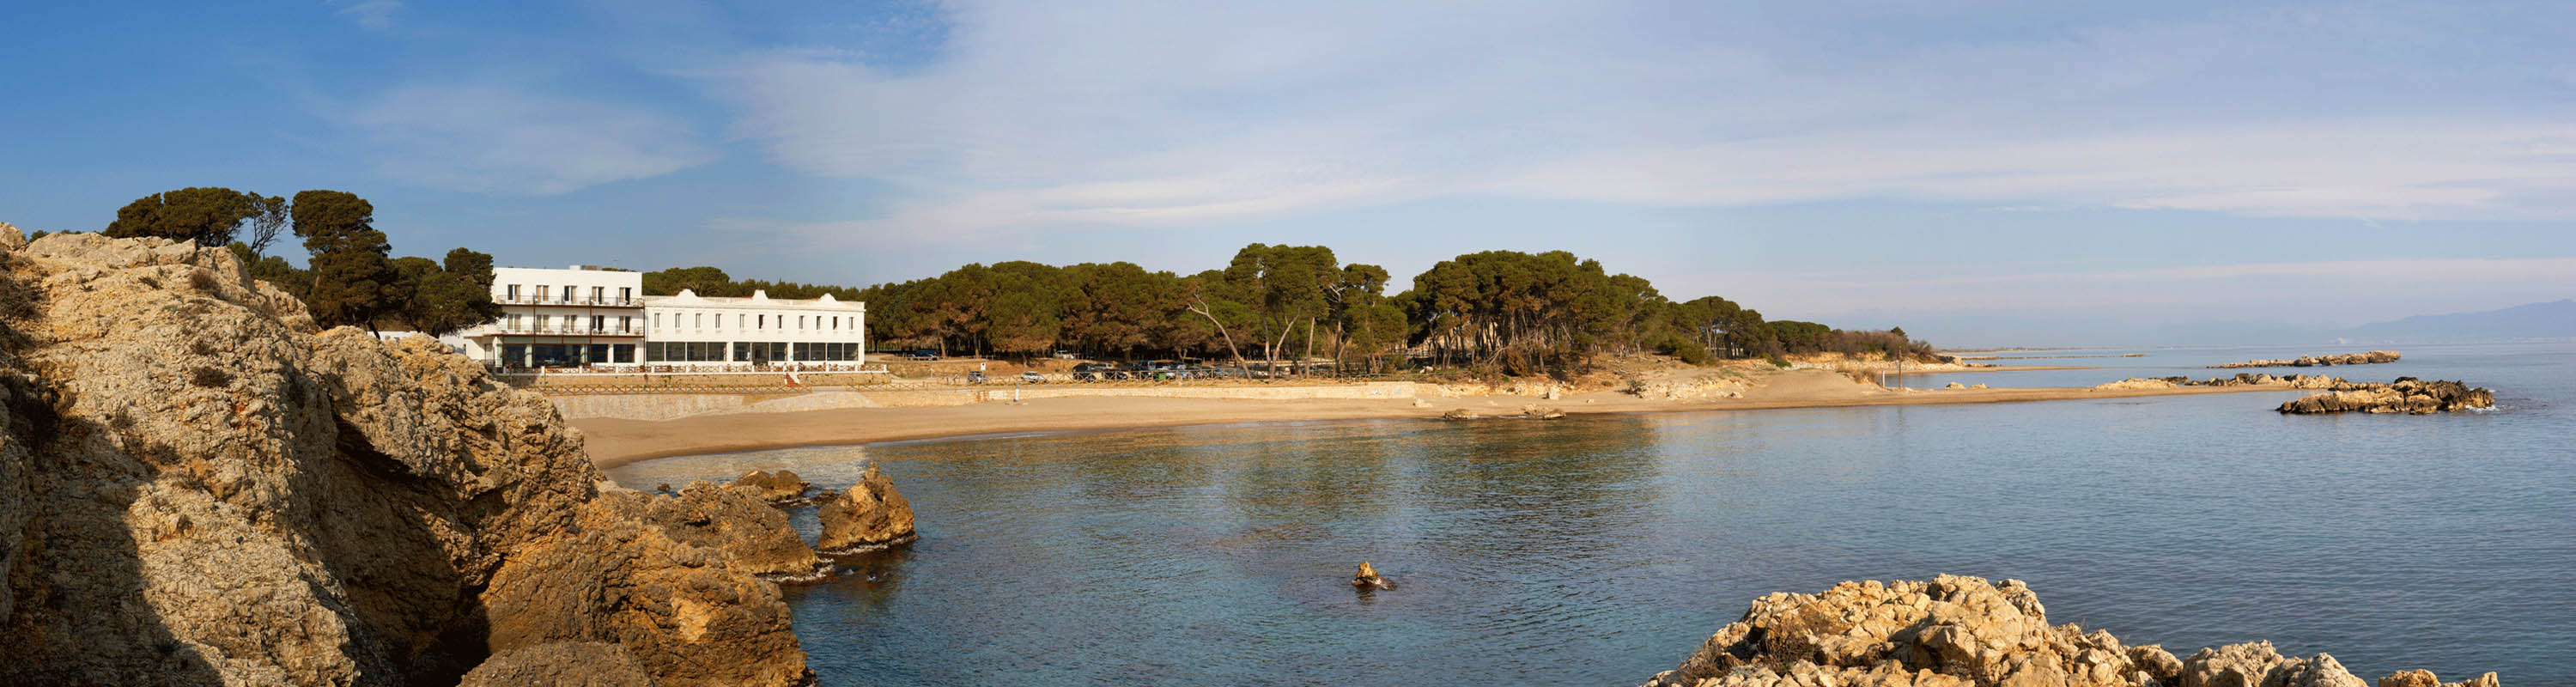 article-blog-golfy-emporda-hotel-empuries-15 Hostal Empúries